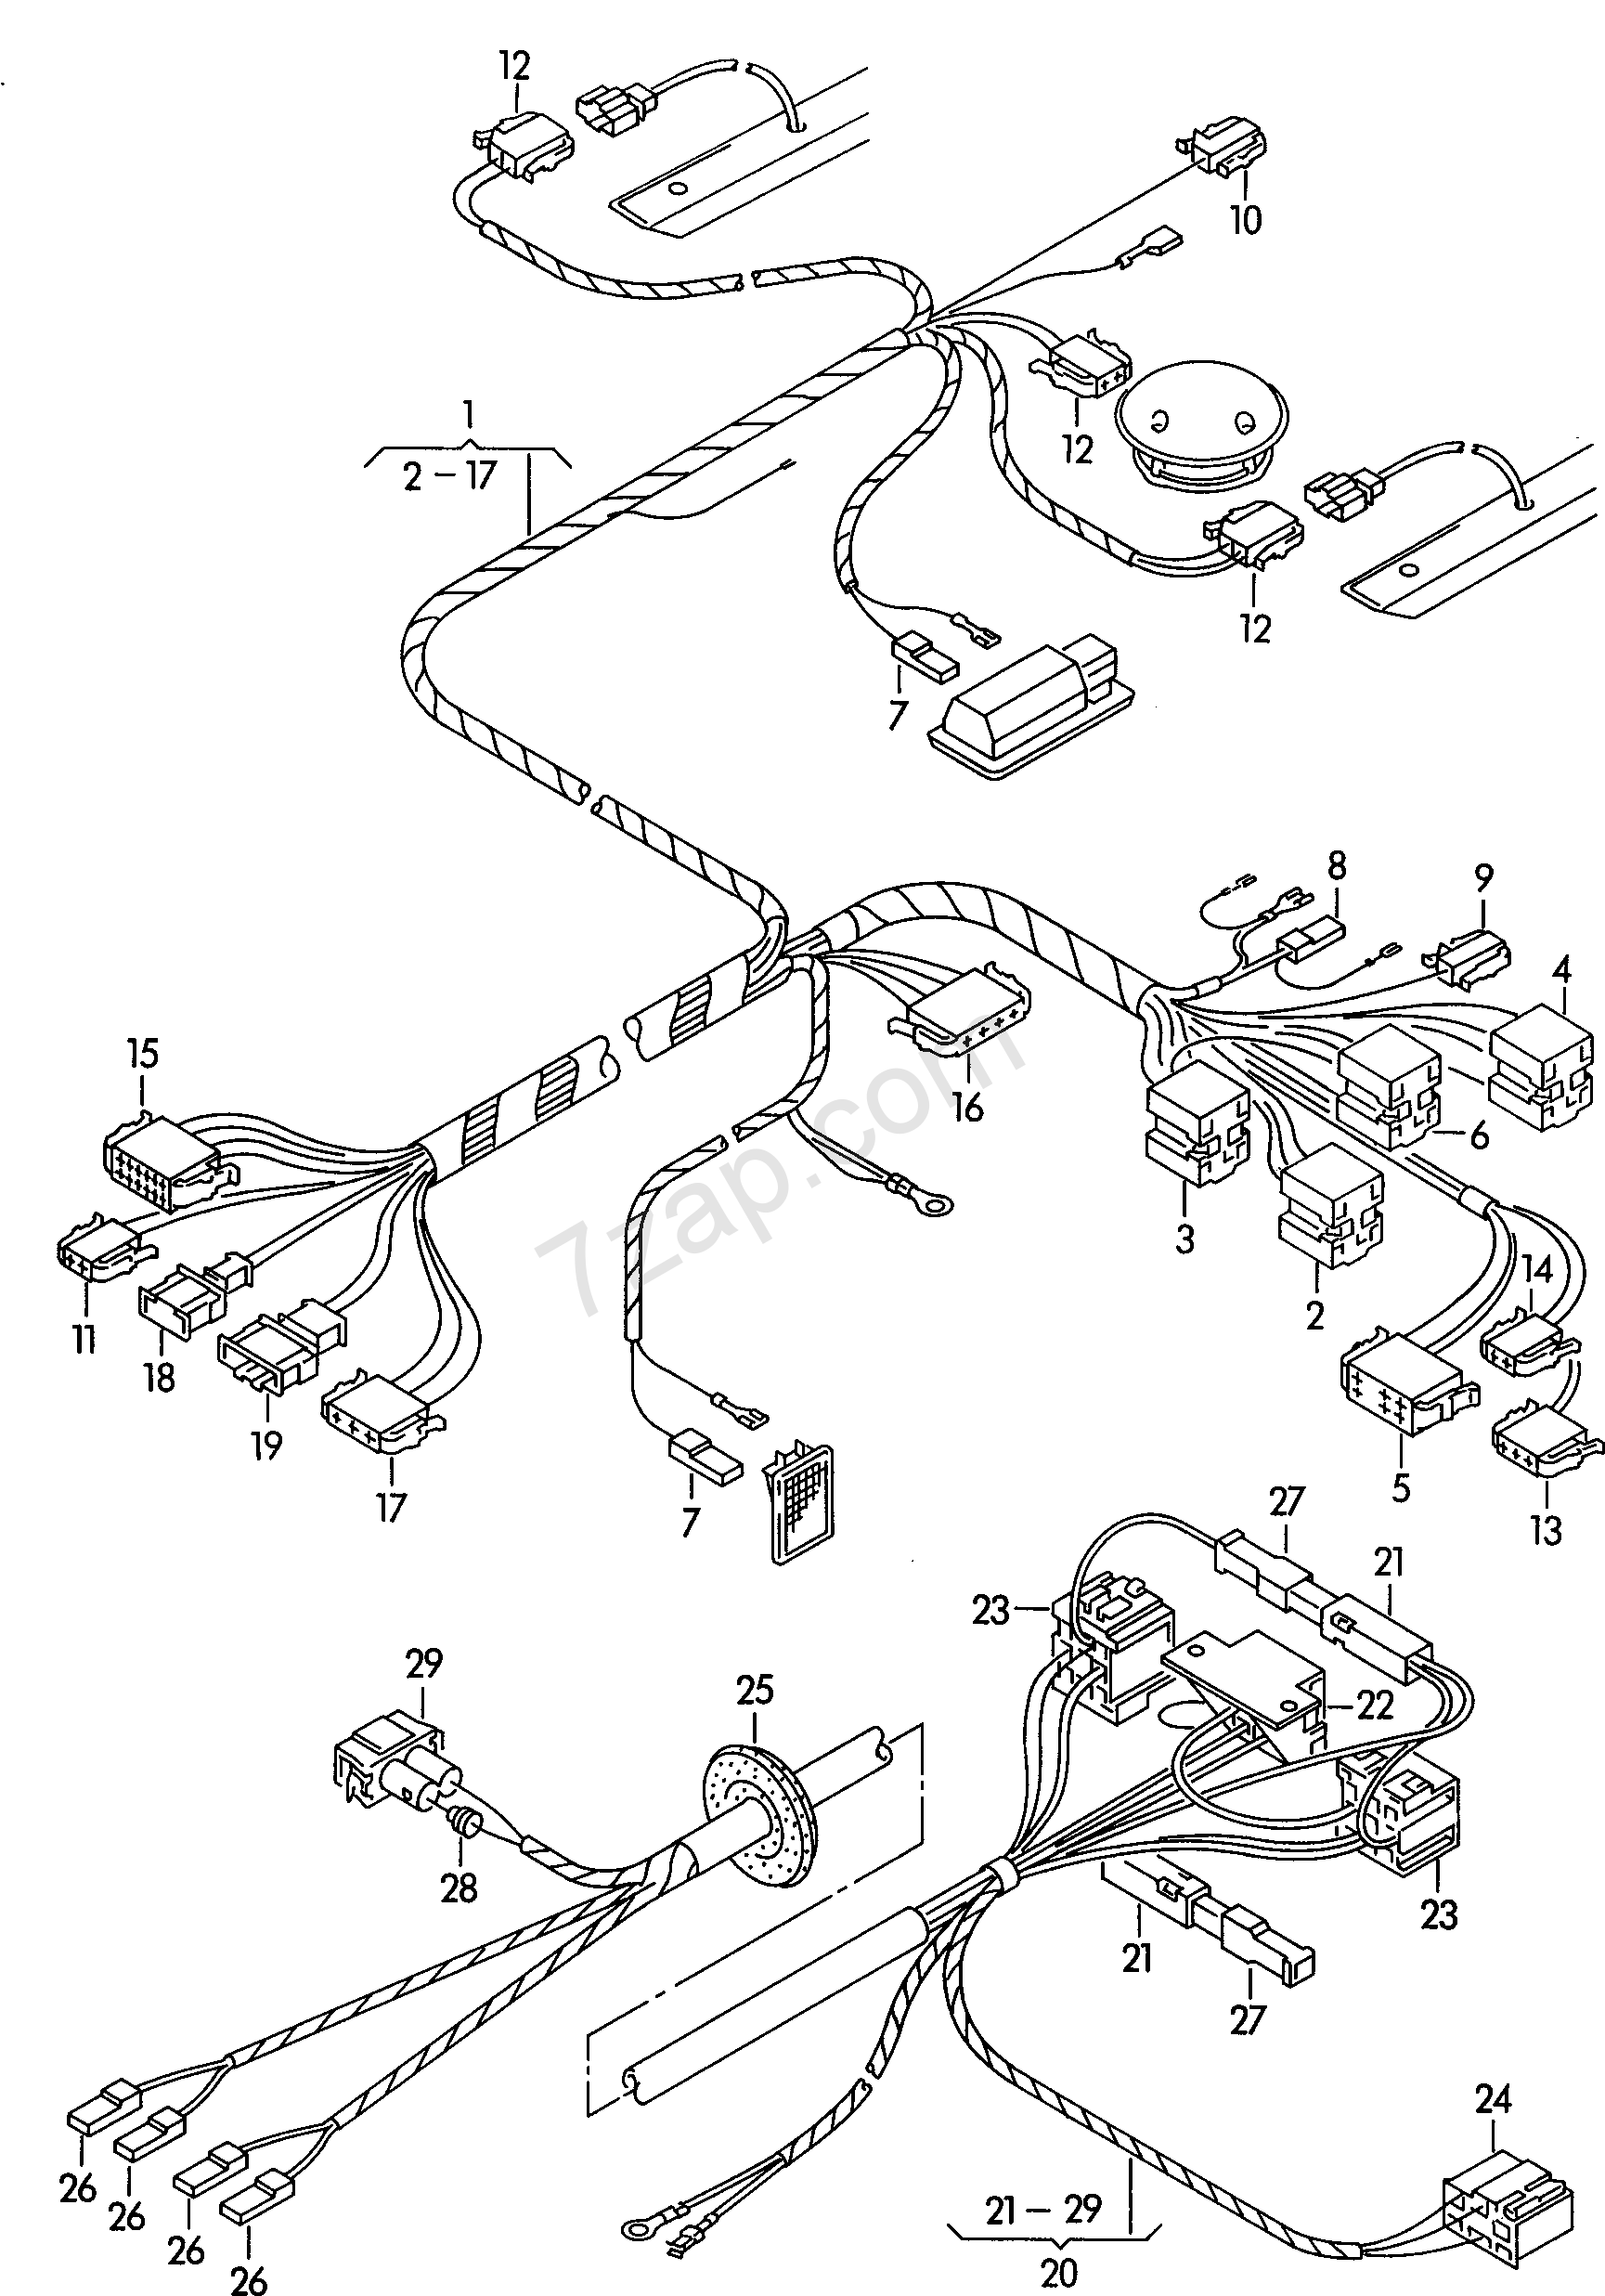 wiring harness for stretcher transporter  tr  2002 year